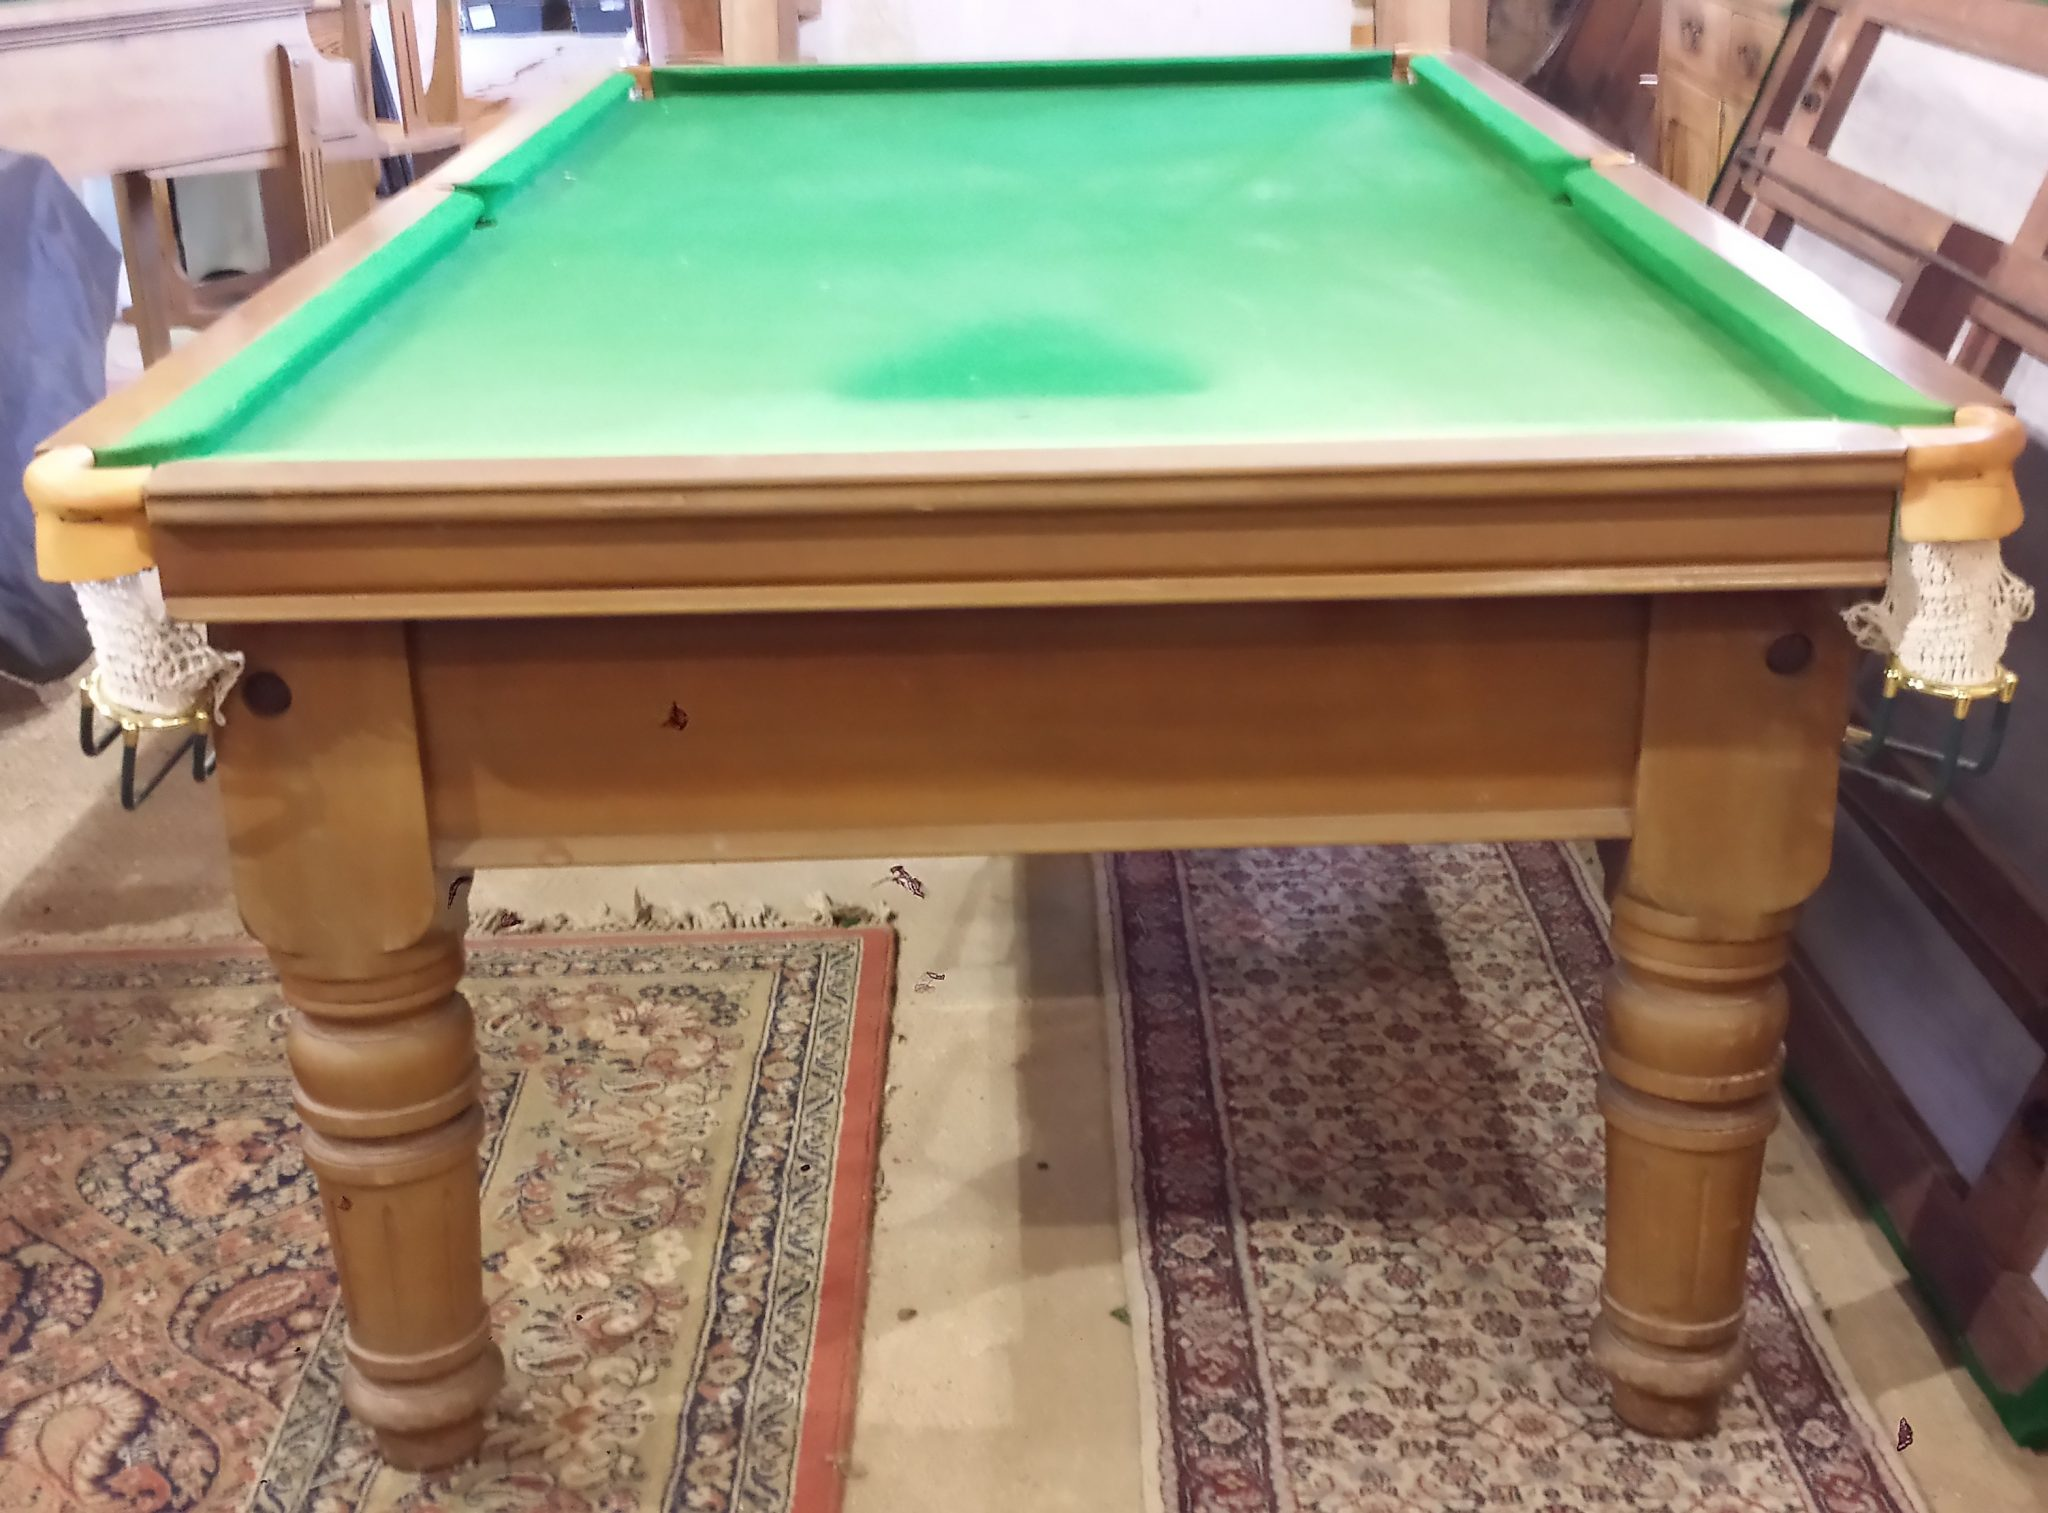 Phenomenal Antique Snooker Tables For Sale Browns Antiques Billiards Download Free Architecture Designs Scobabritishbridgeorg